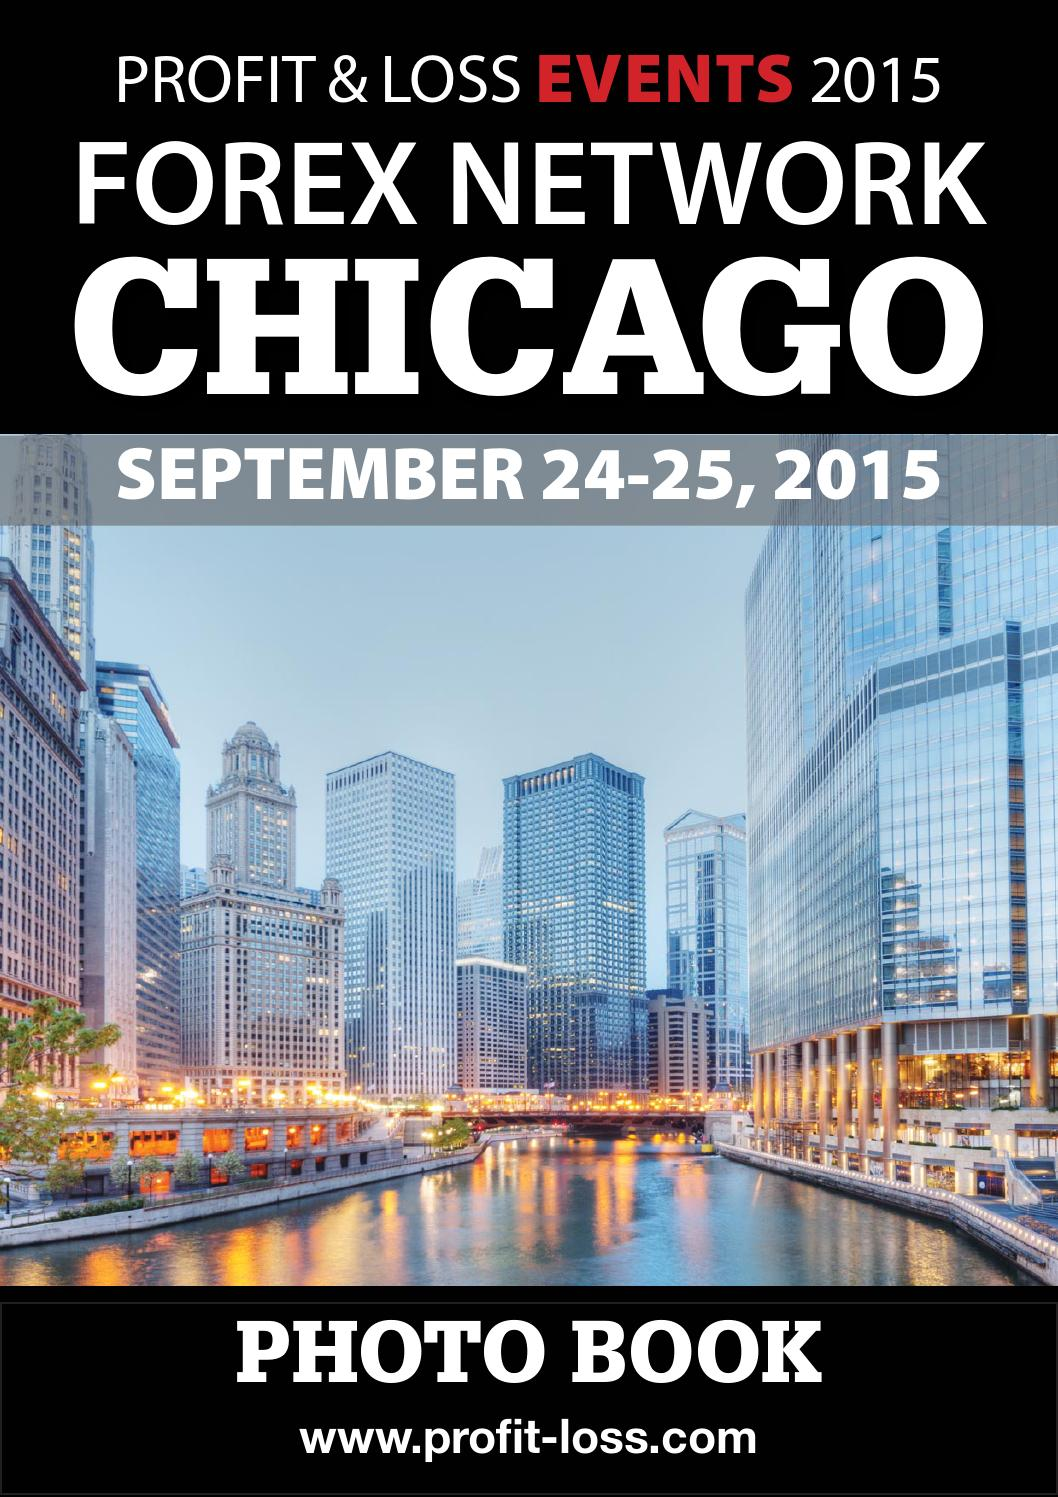 P&l forex network chicago 2014